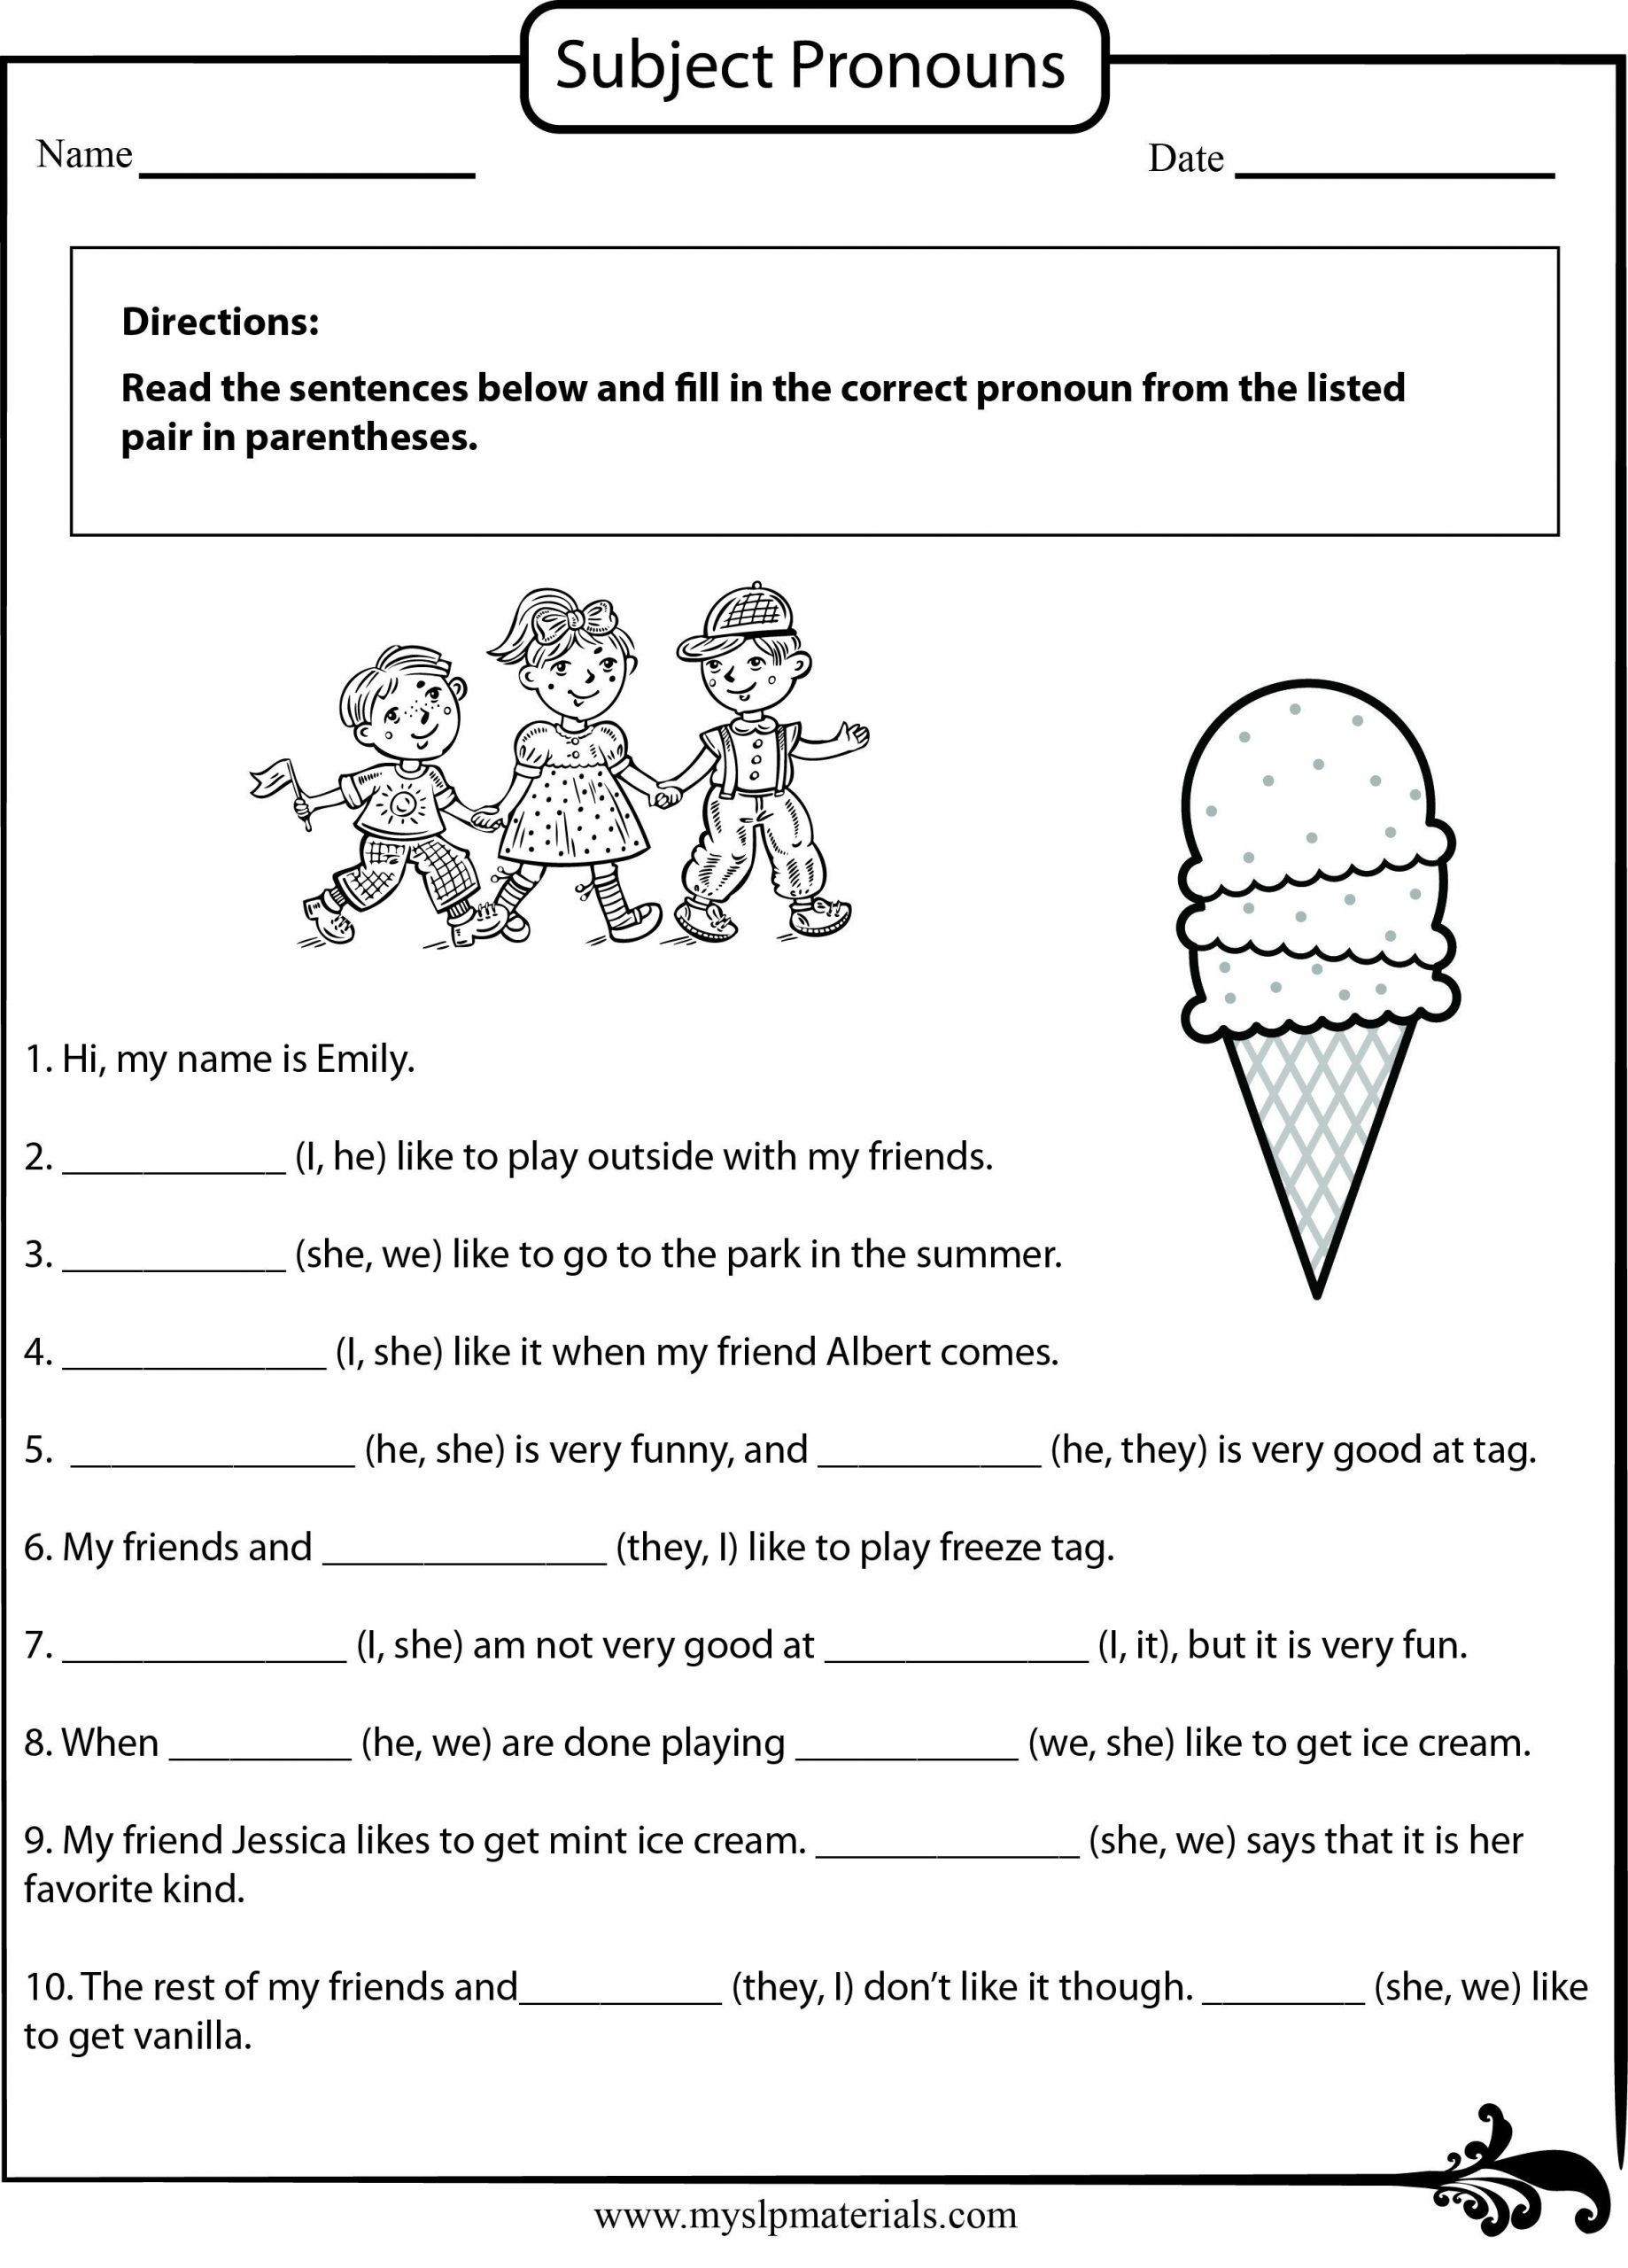 Pronouns Worksheet 2nd Grade Subject Pronoun Speech